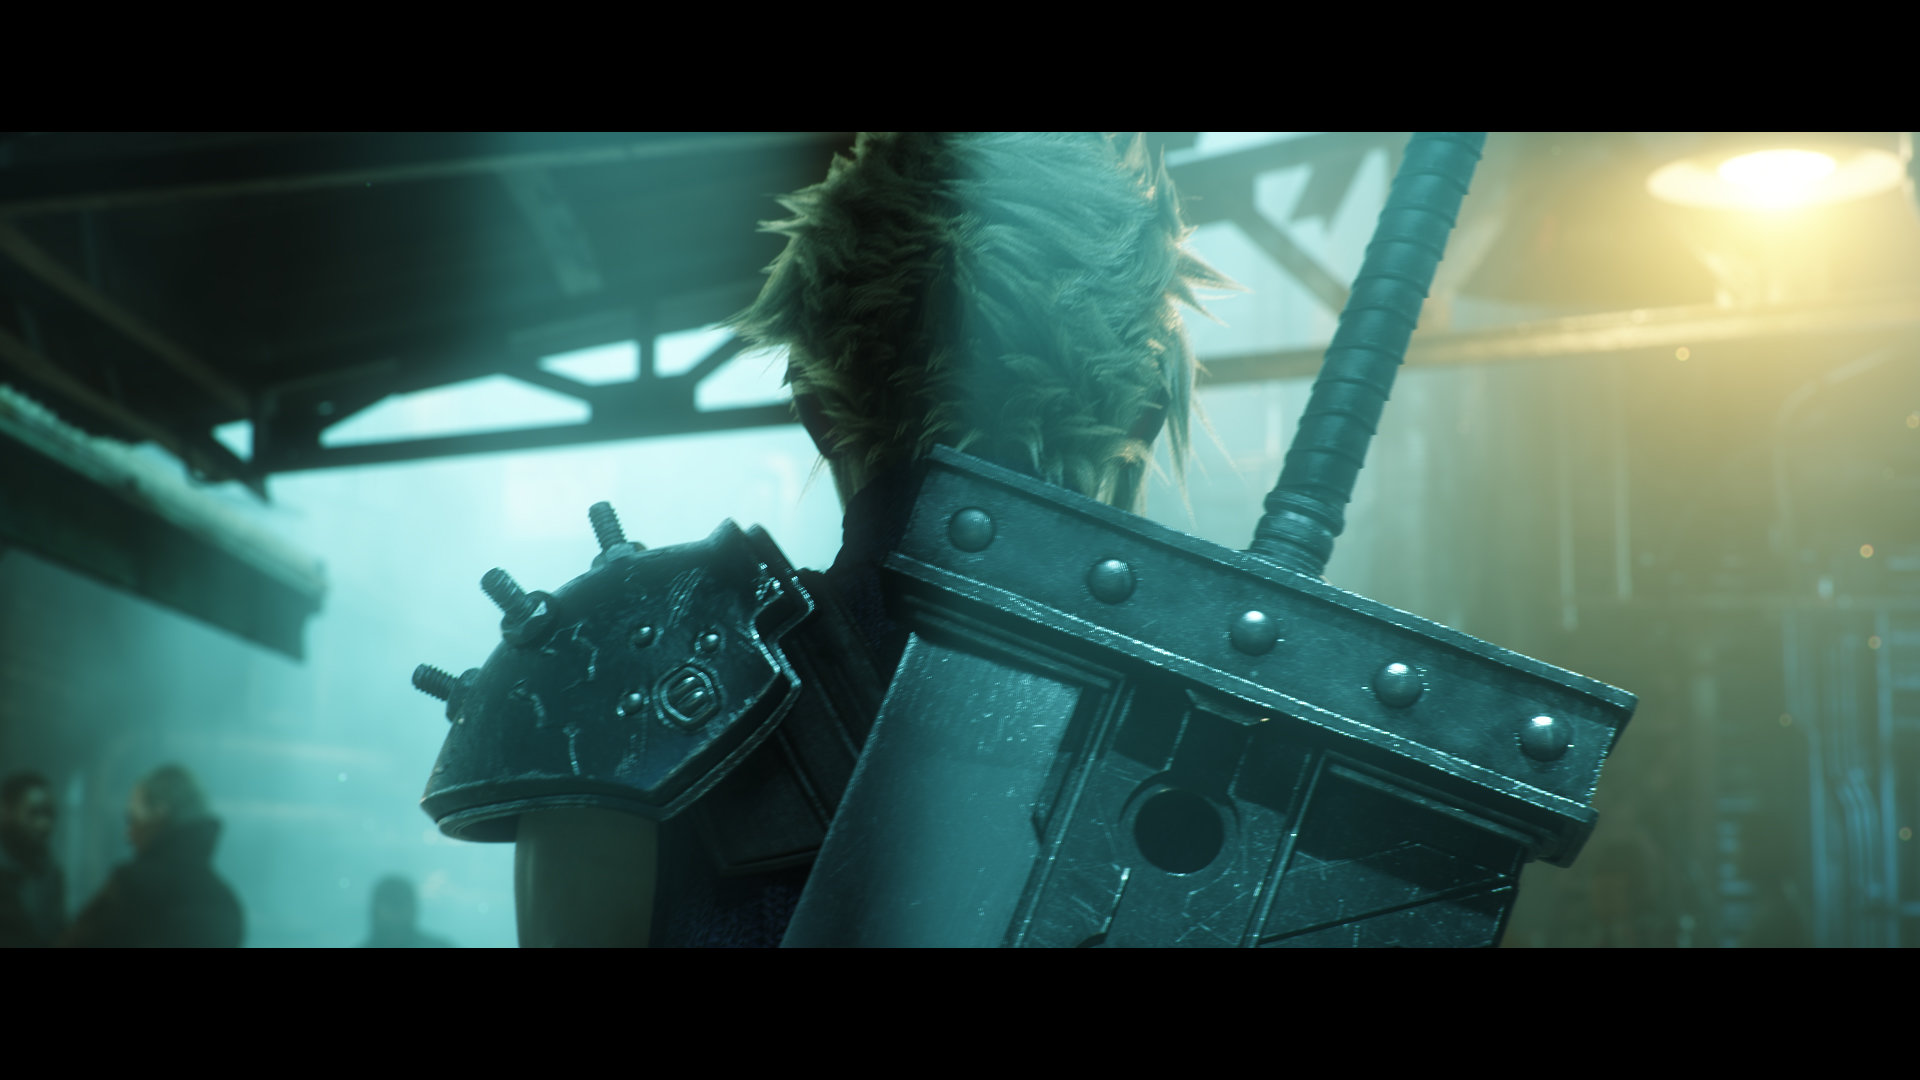 Final Fantasy 7 Remake – Cloud Strife